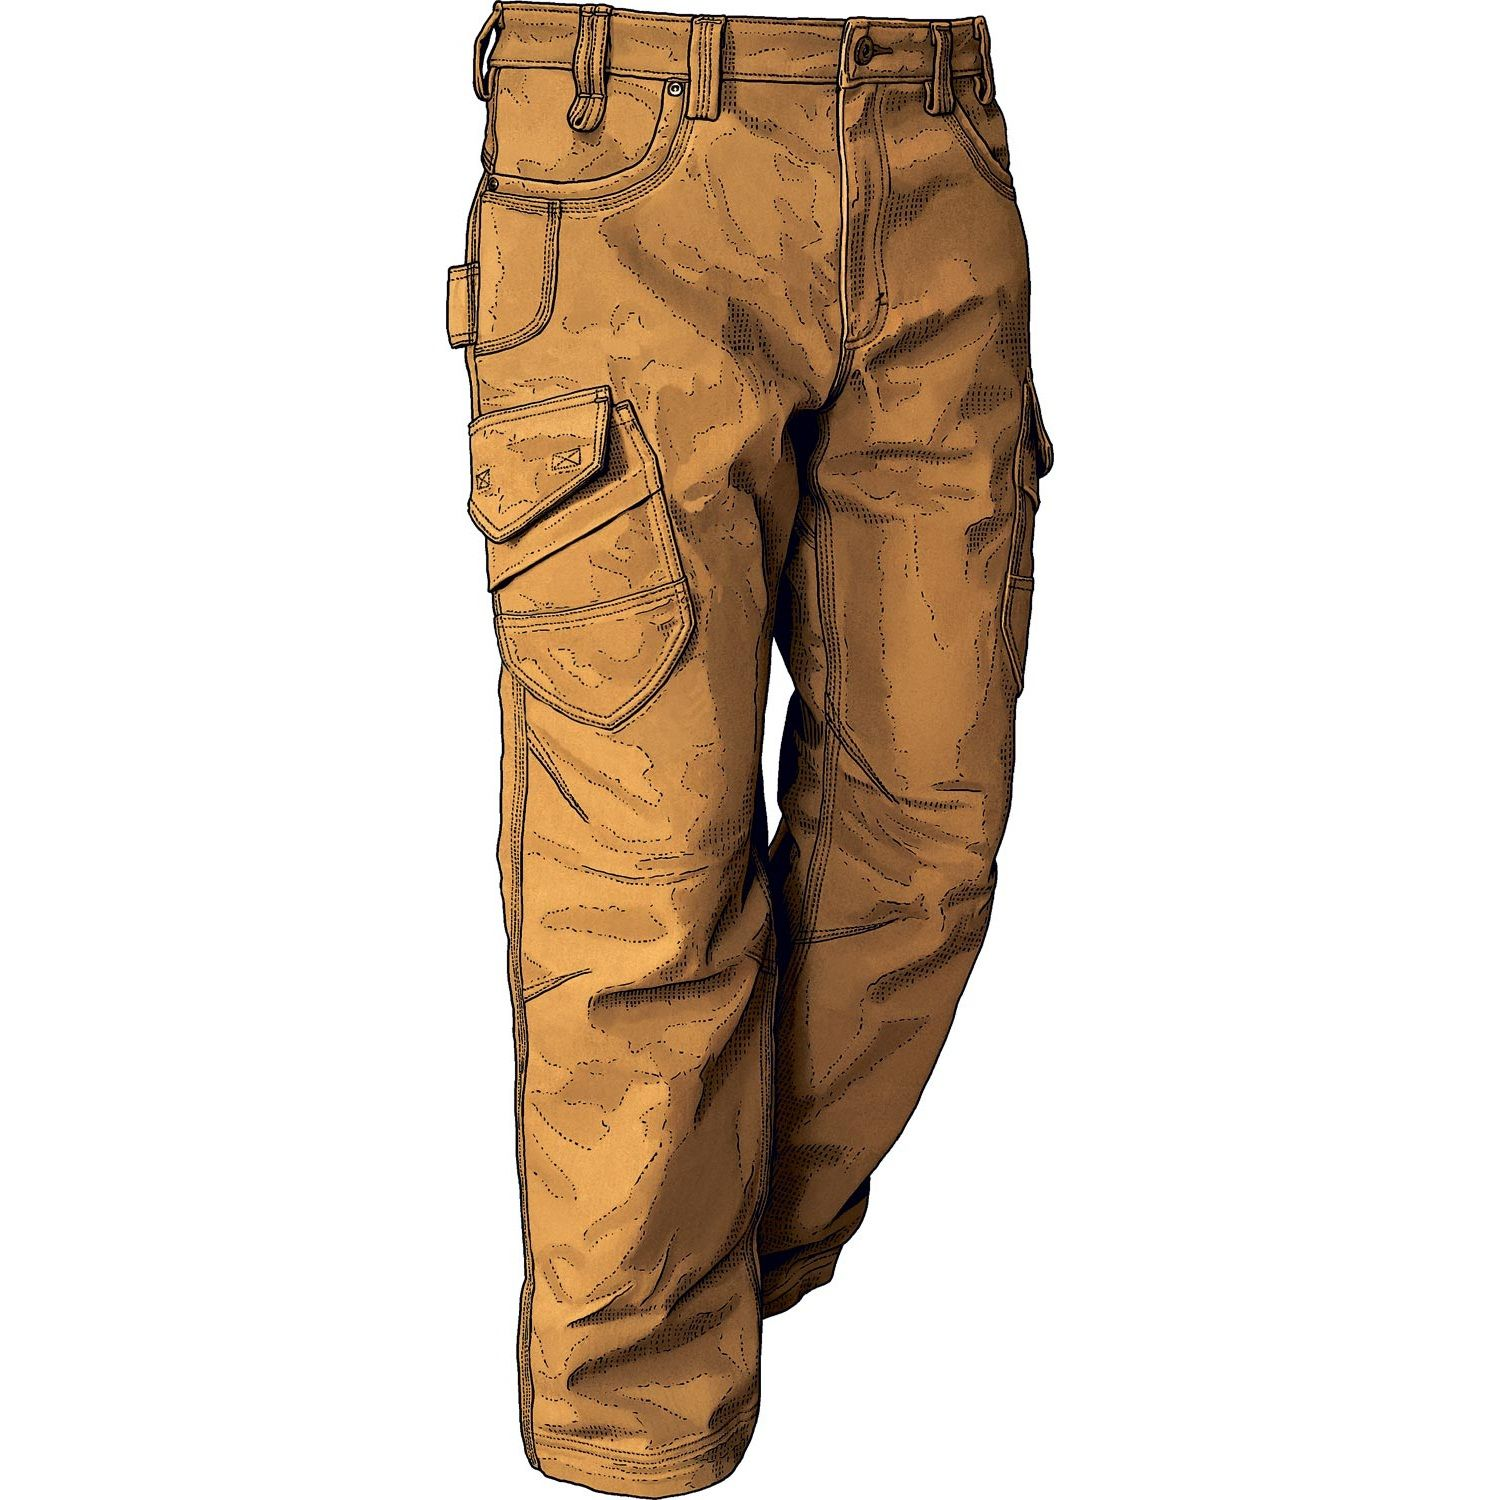 fa0e9df661 Work pants are too hot for summer, right? Think again! Sweatstop Fire Hose  is still highly abrasion-resistant, and has 24% wicking CoolMax to wick  away ...